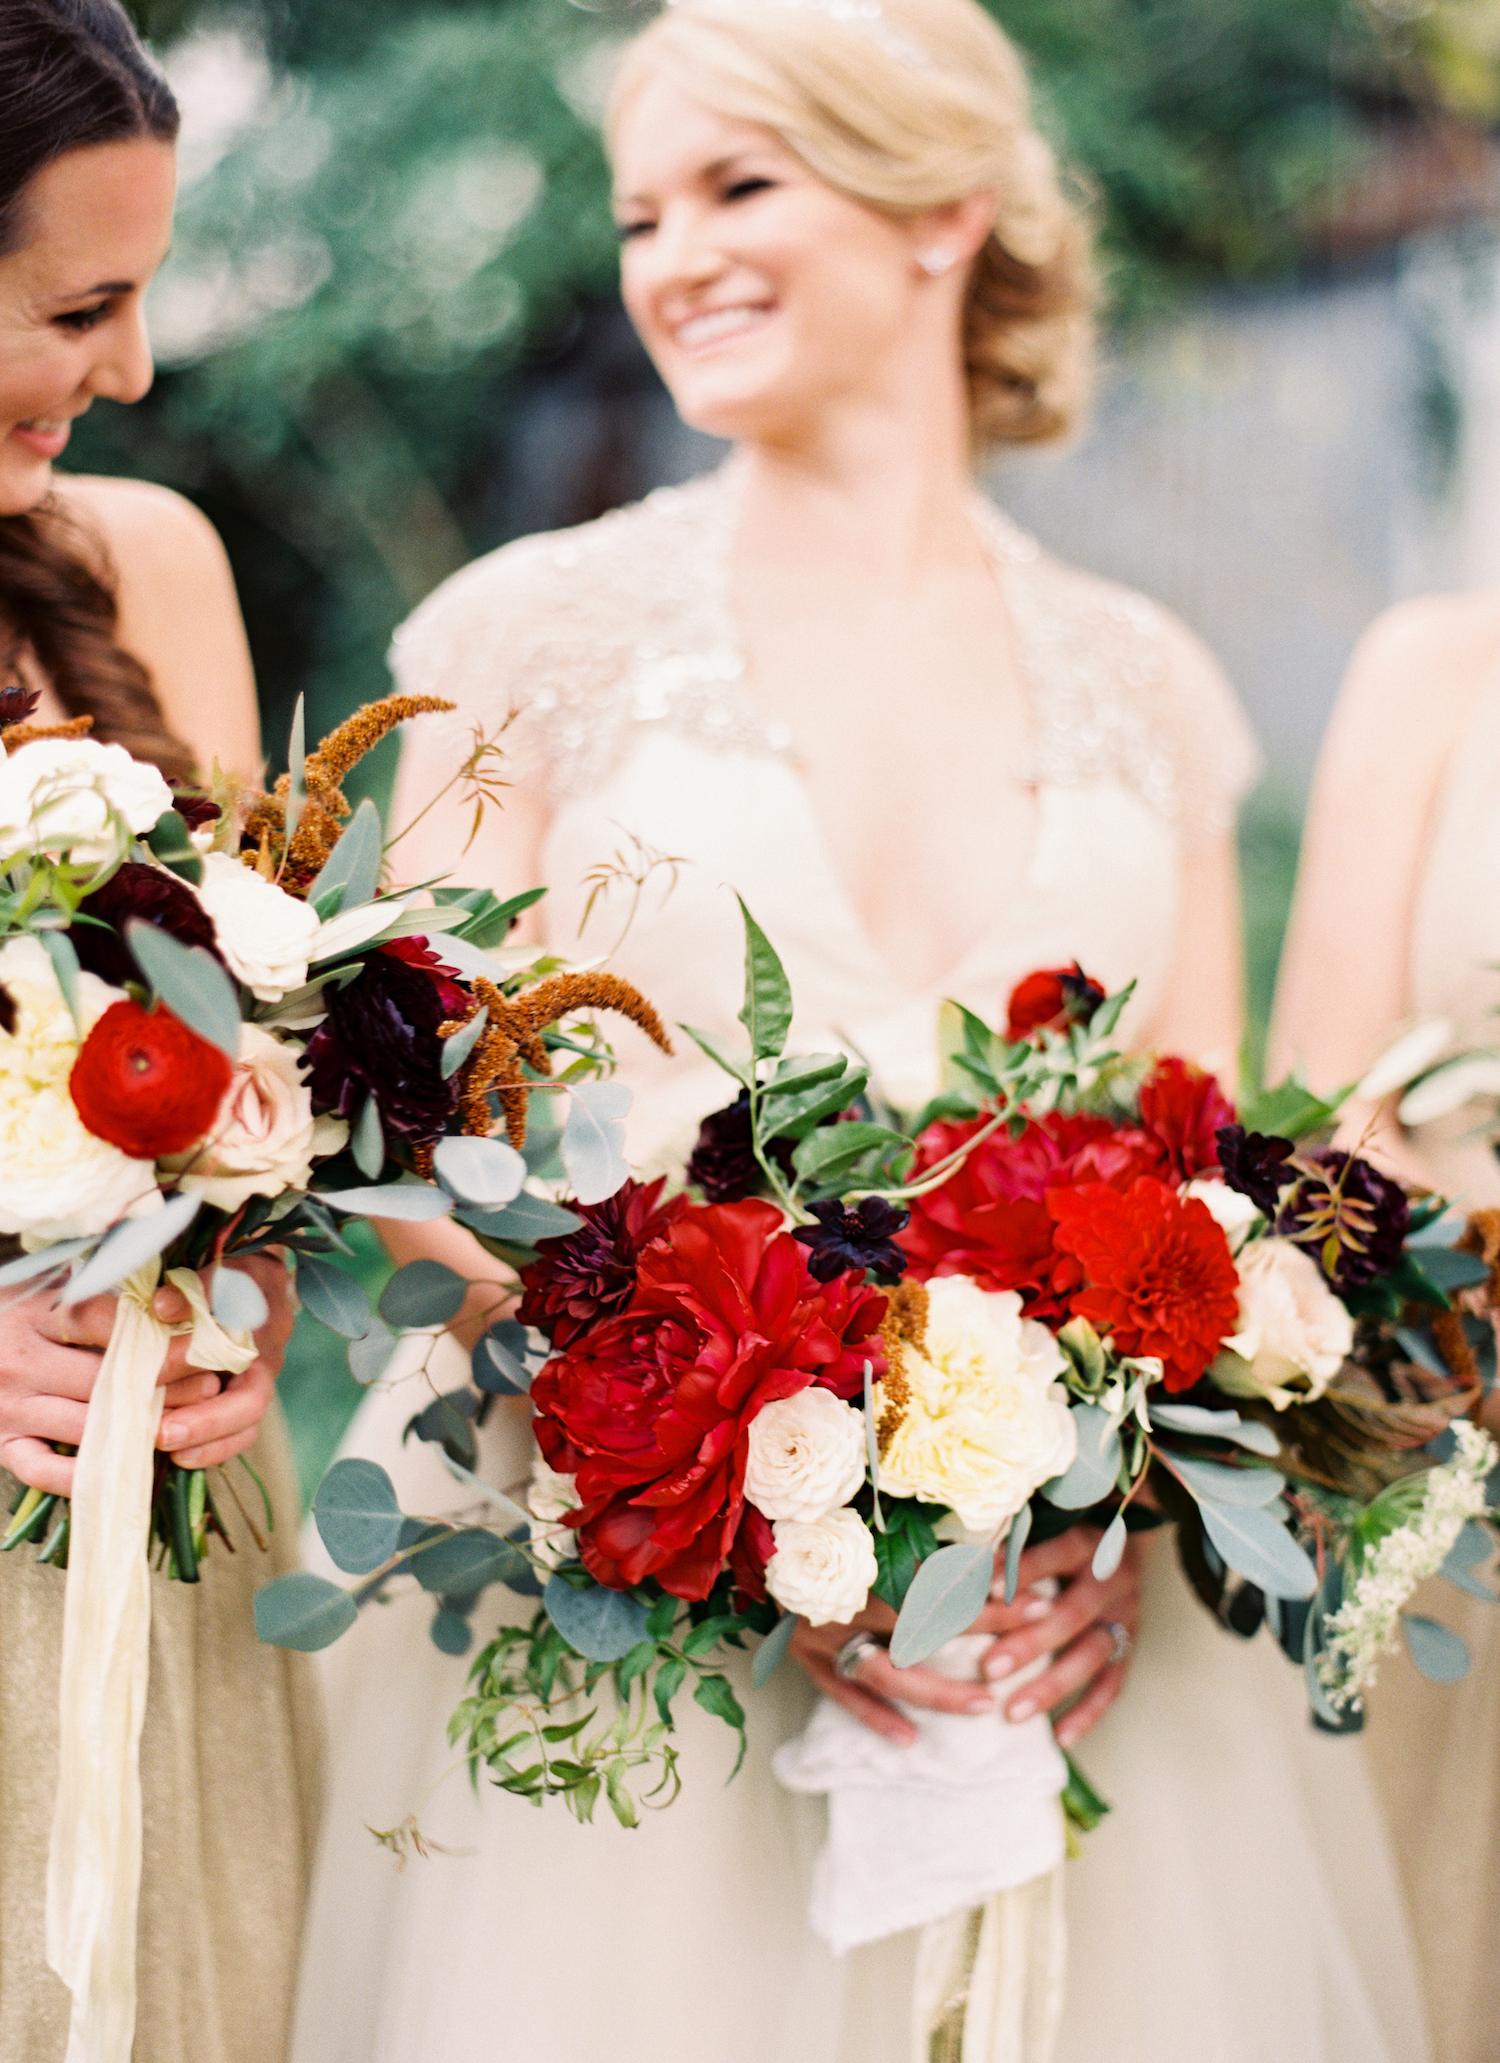 A Florist's Best Tips for Creating an Unexpected Winter Wedding Bouquet